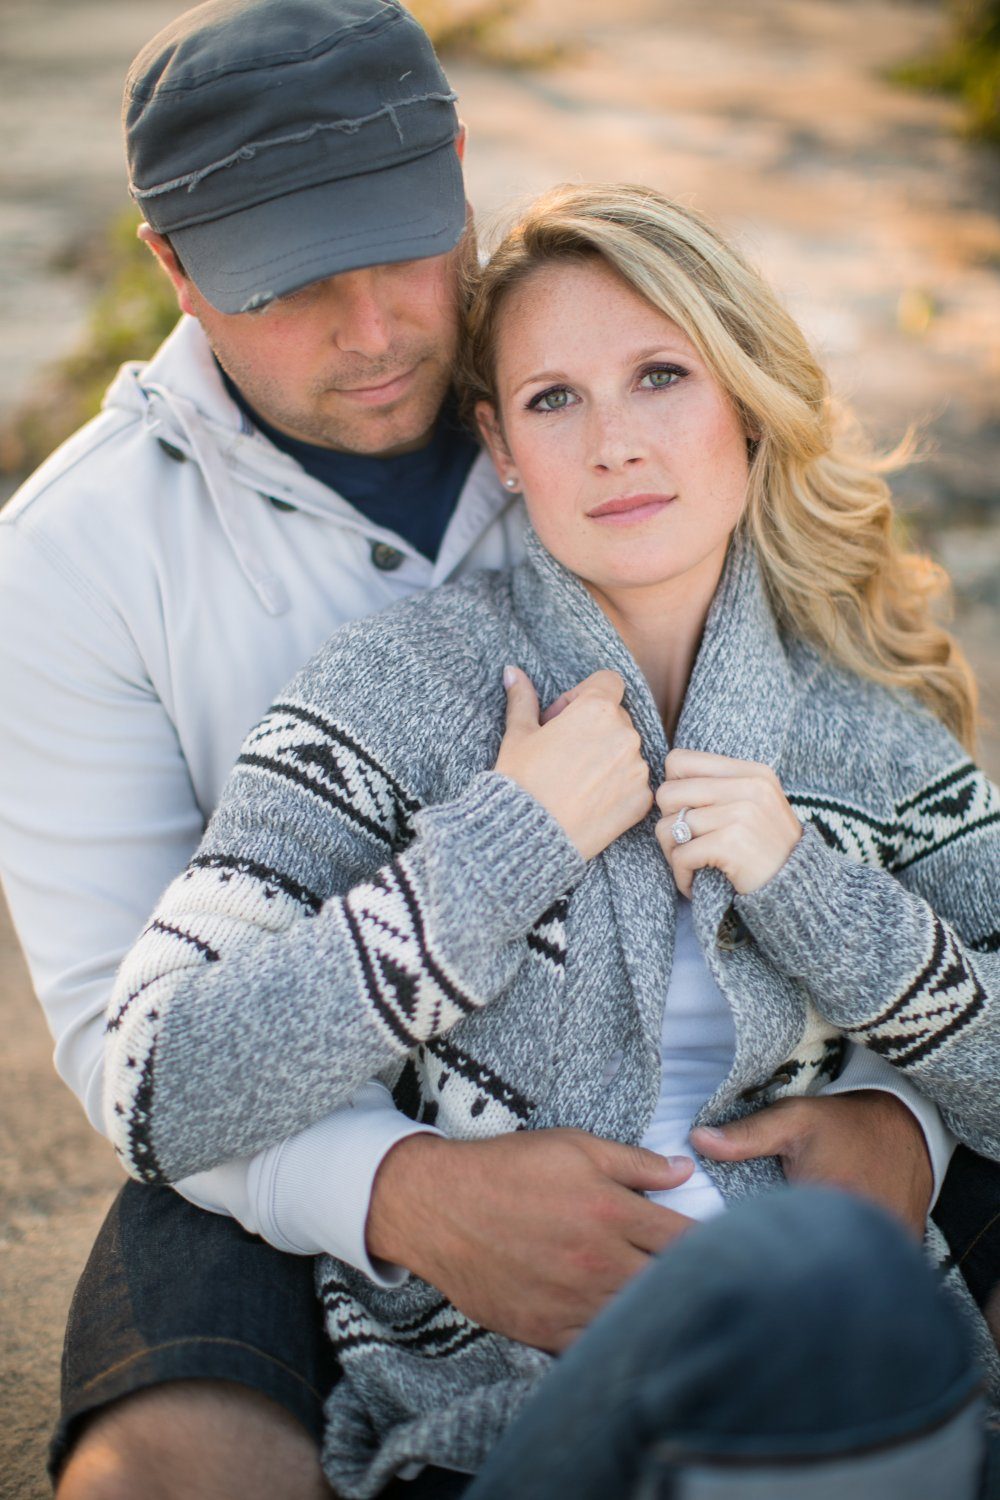 JF Hannigan Photography Engagement Session: Jenna and Brad: from shore to shore 14